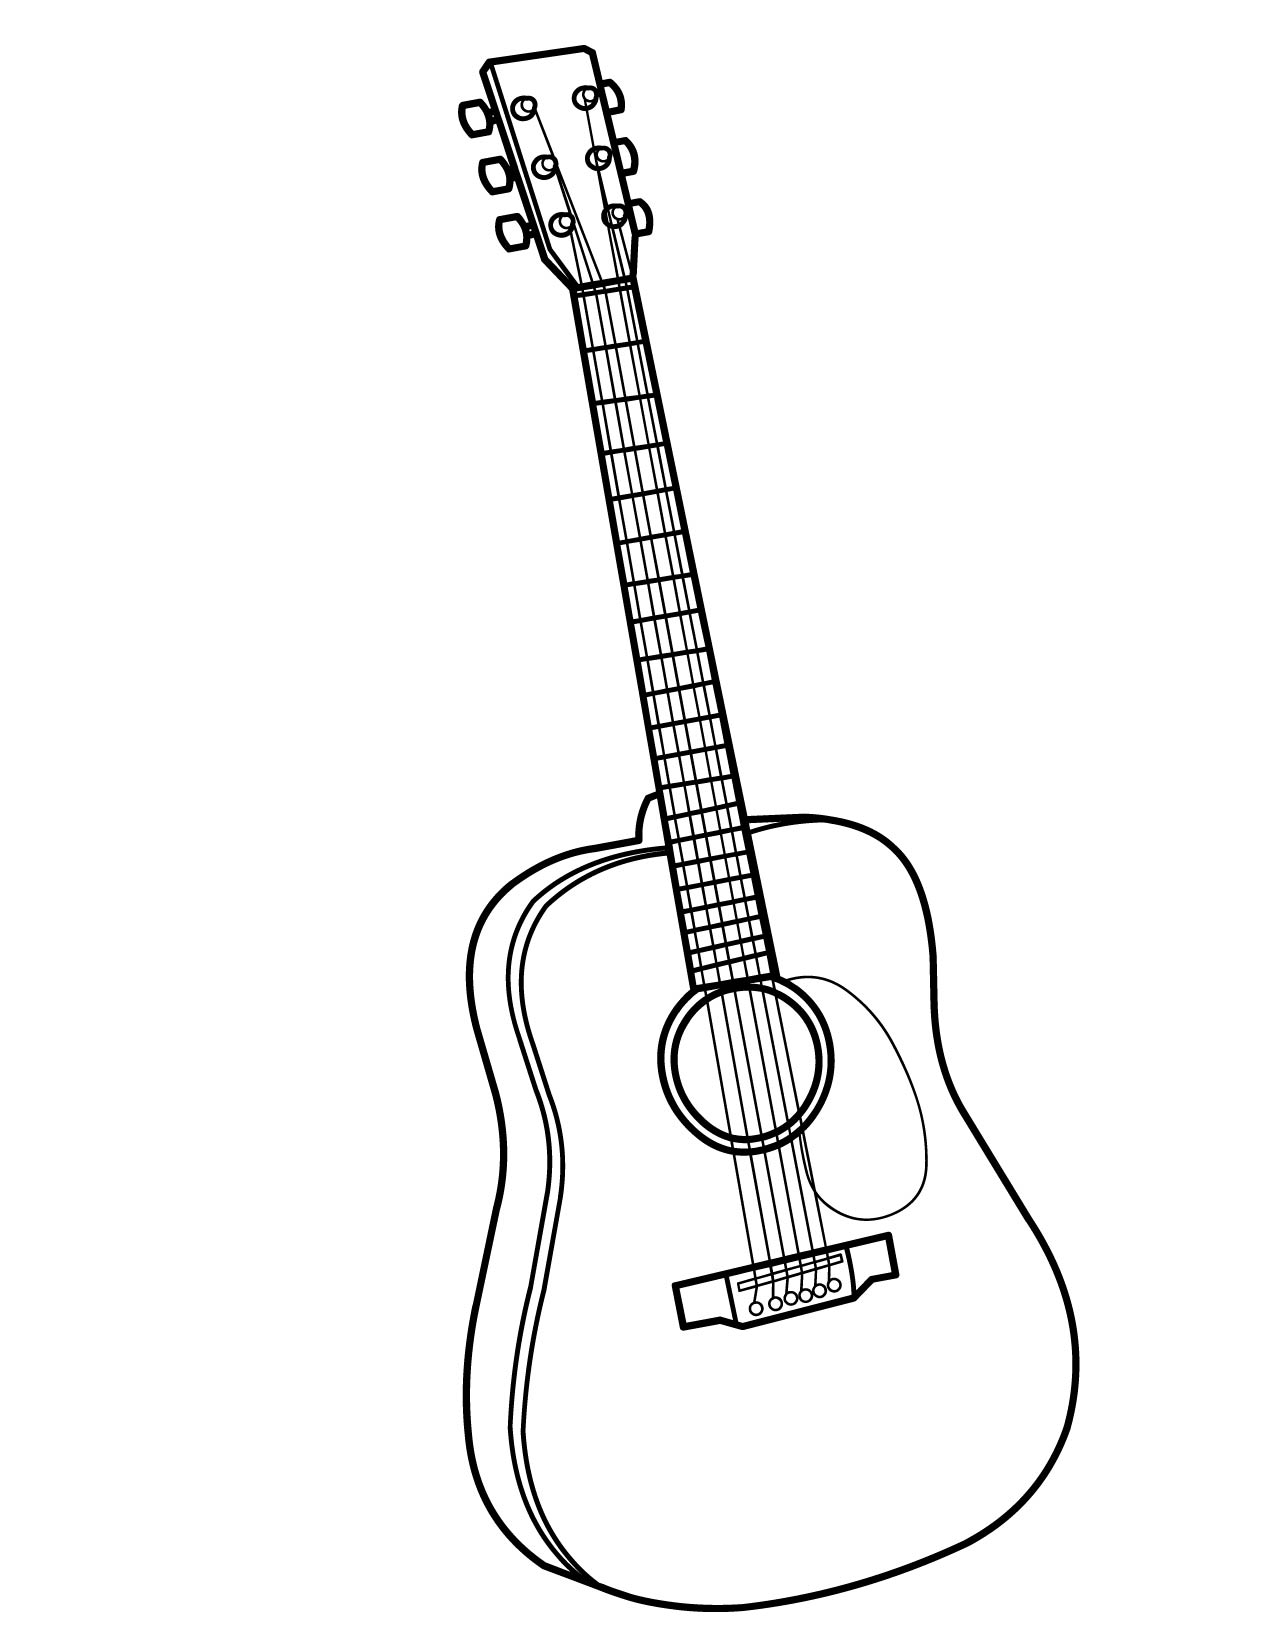 drawing guitar bass guitar by asquick on deviantart drawing guitar